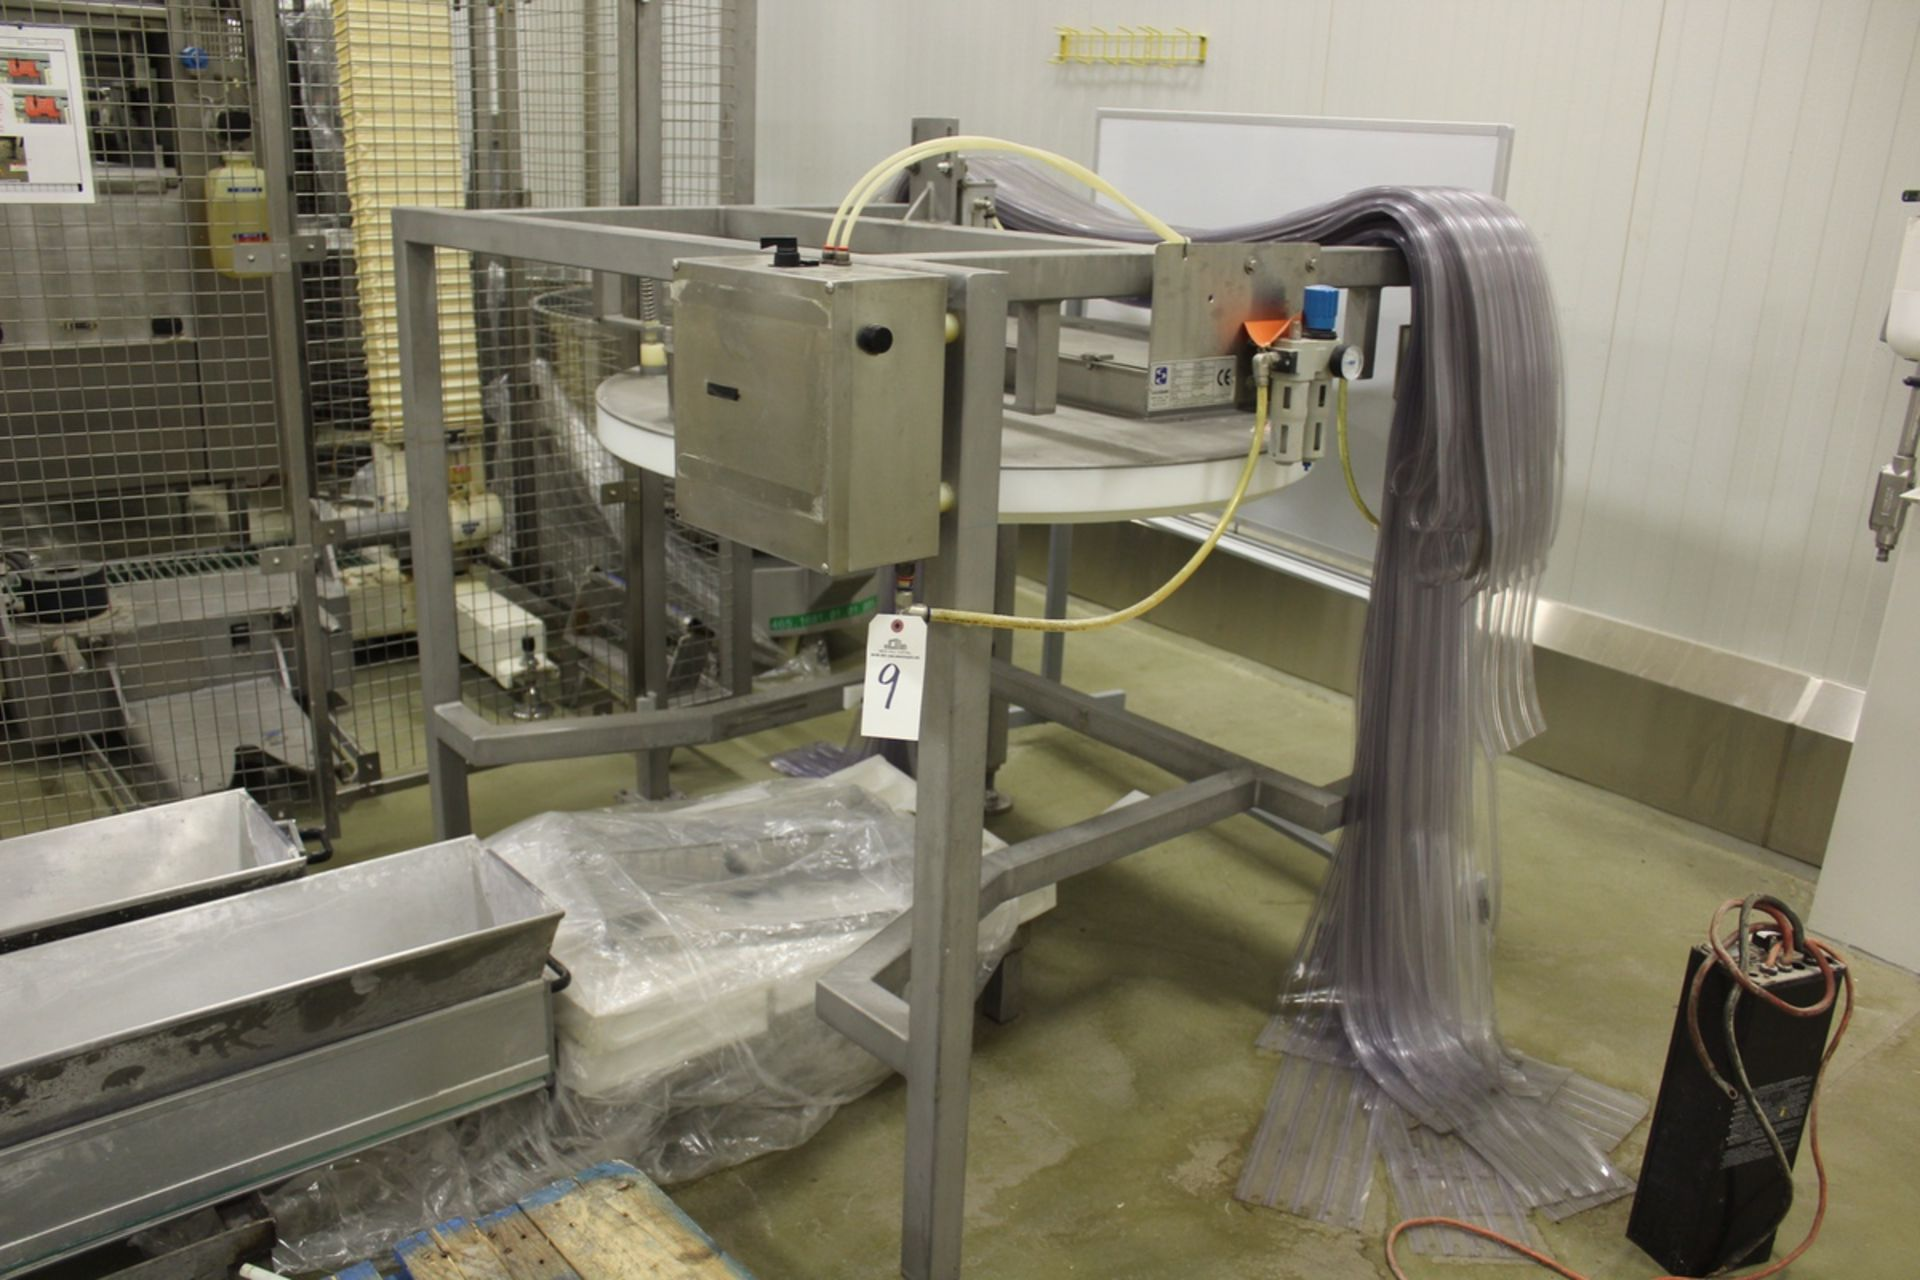 """Lot 9 - 2009 San Cassiano Mixing Bowl """"Duster"""" Ingredient Loading Stand, M# S.D., S/N 15009 